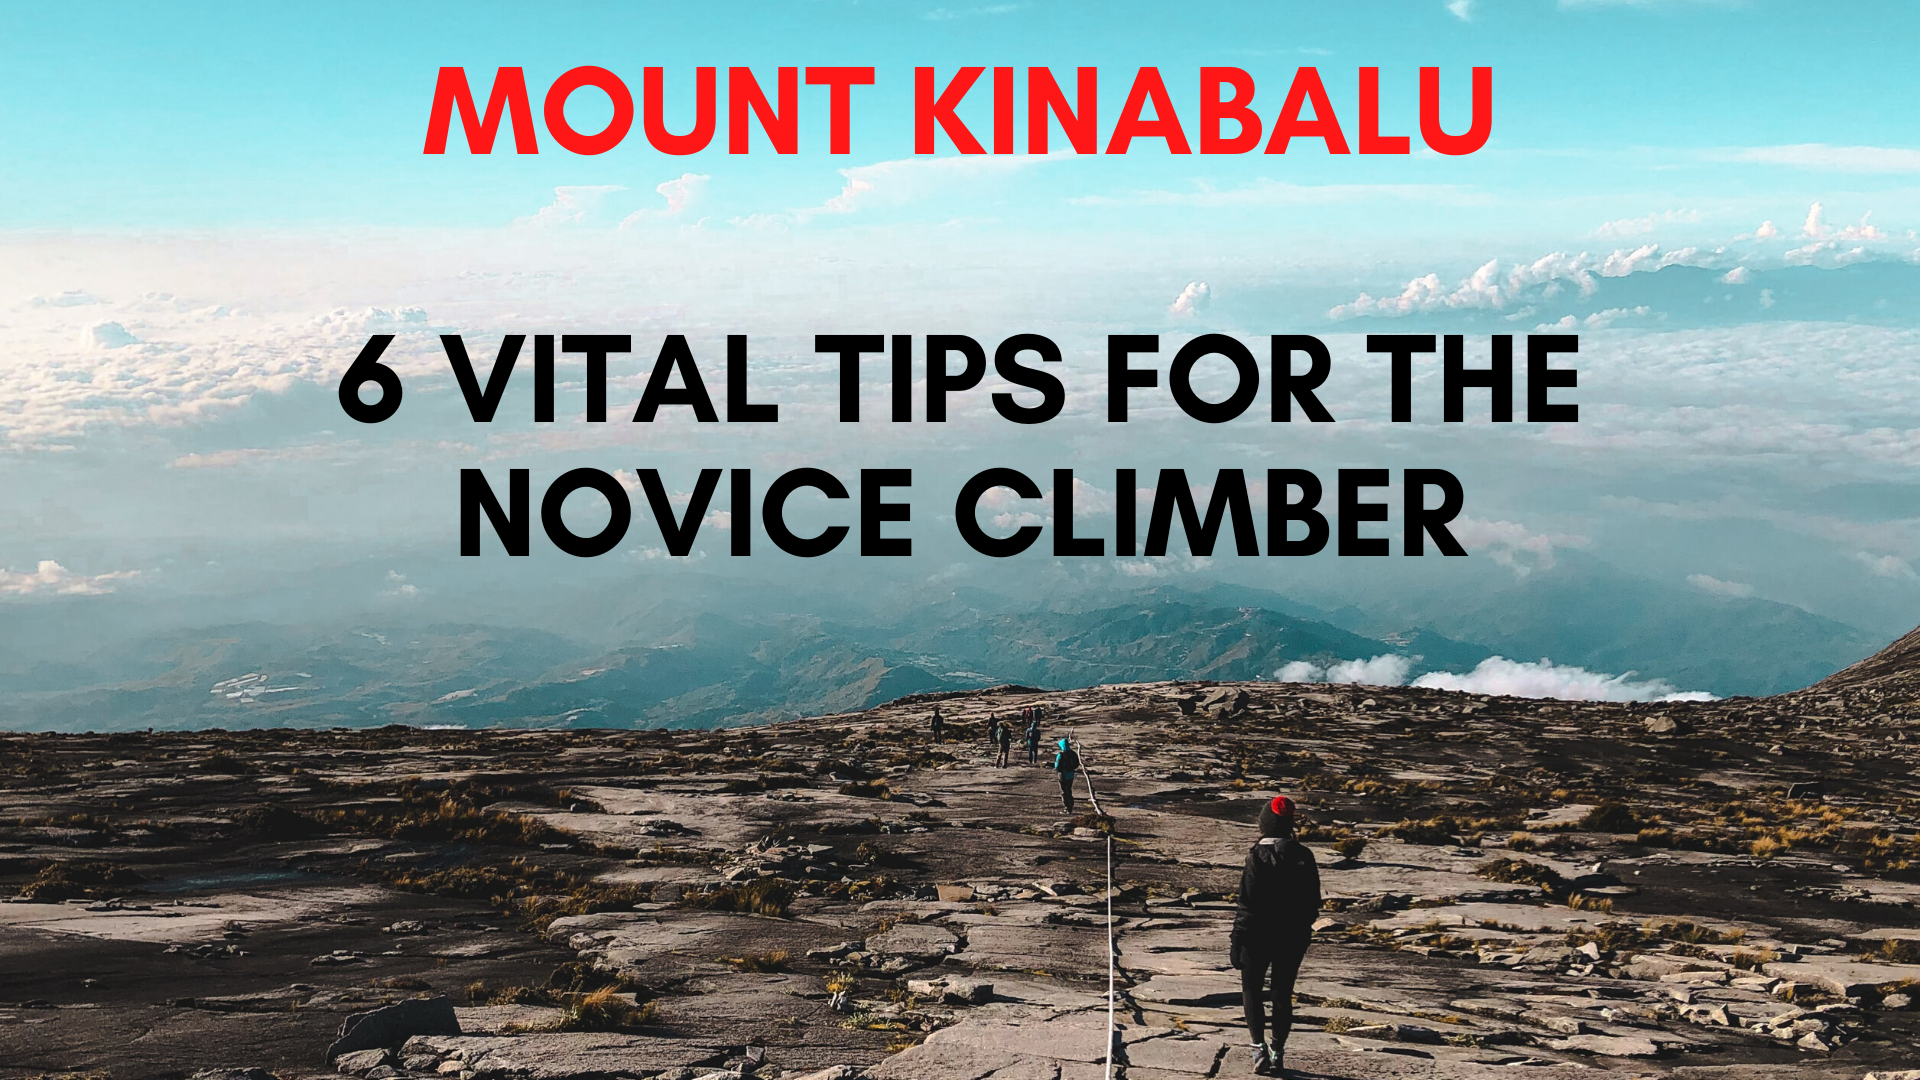 Mount Kinabalu: 6 Vital Tips to know for the Novice Climber